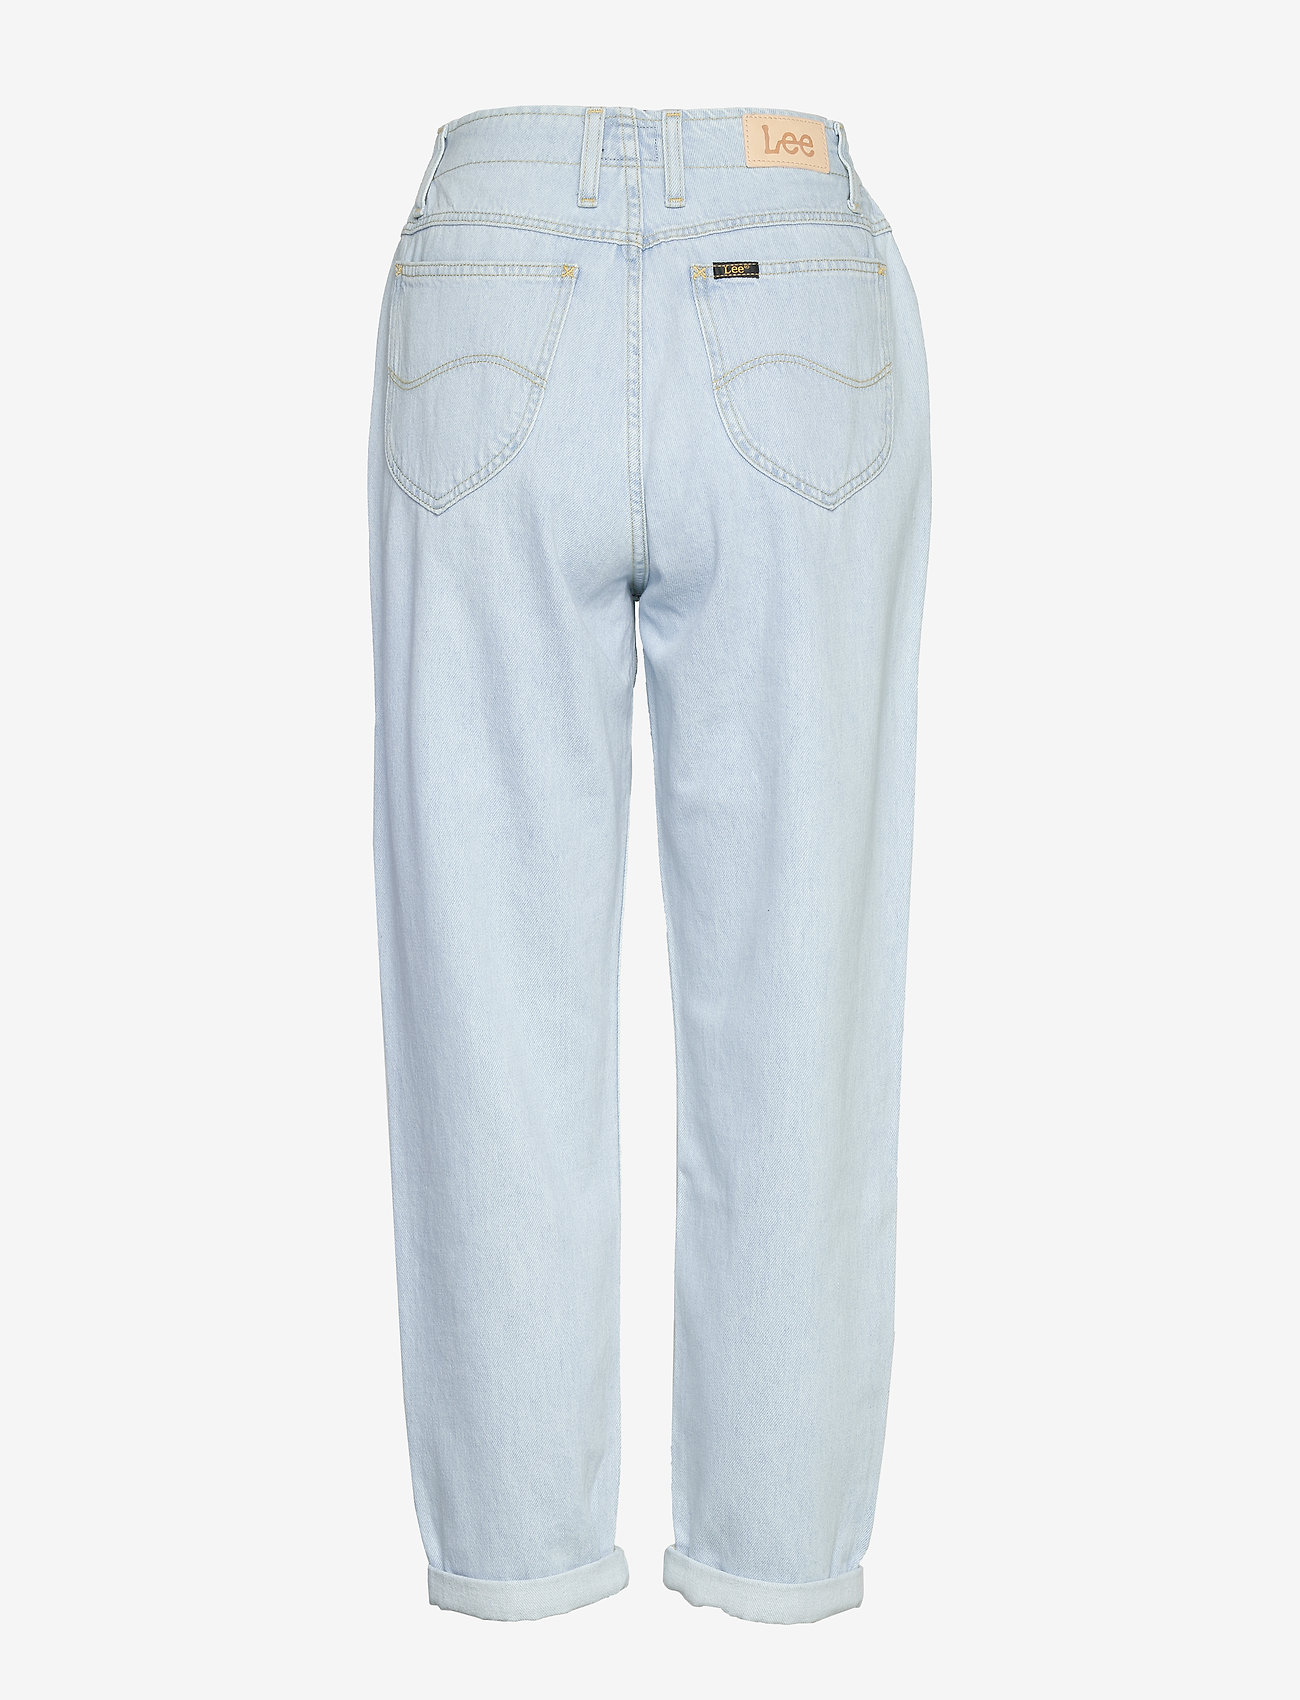 Lee Jeans - ELASTICATED MOM - mammajeans - bleached ore - 1